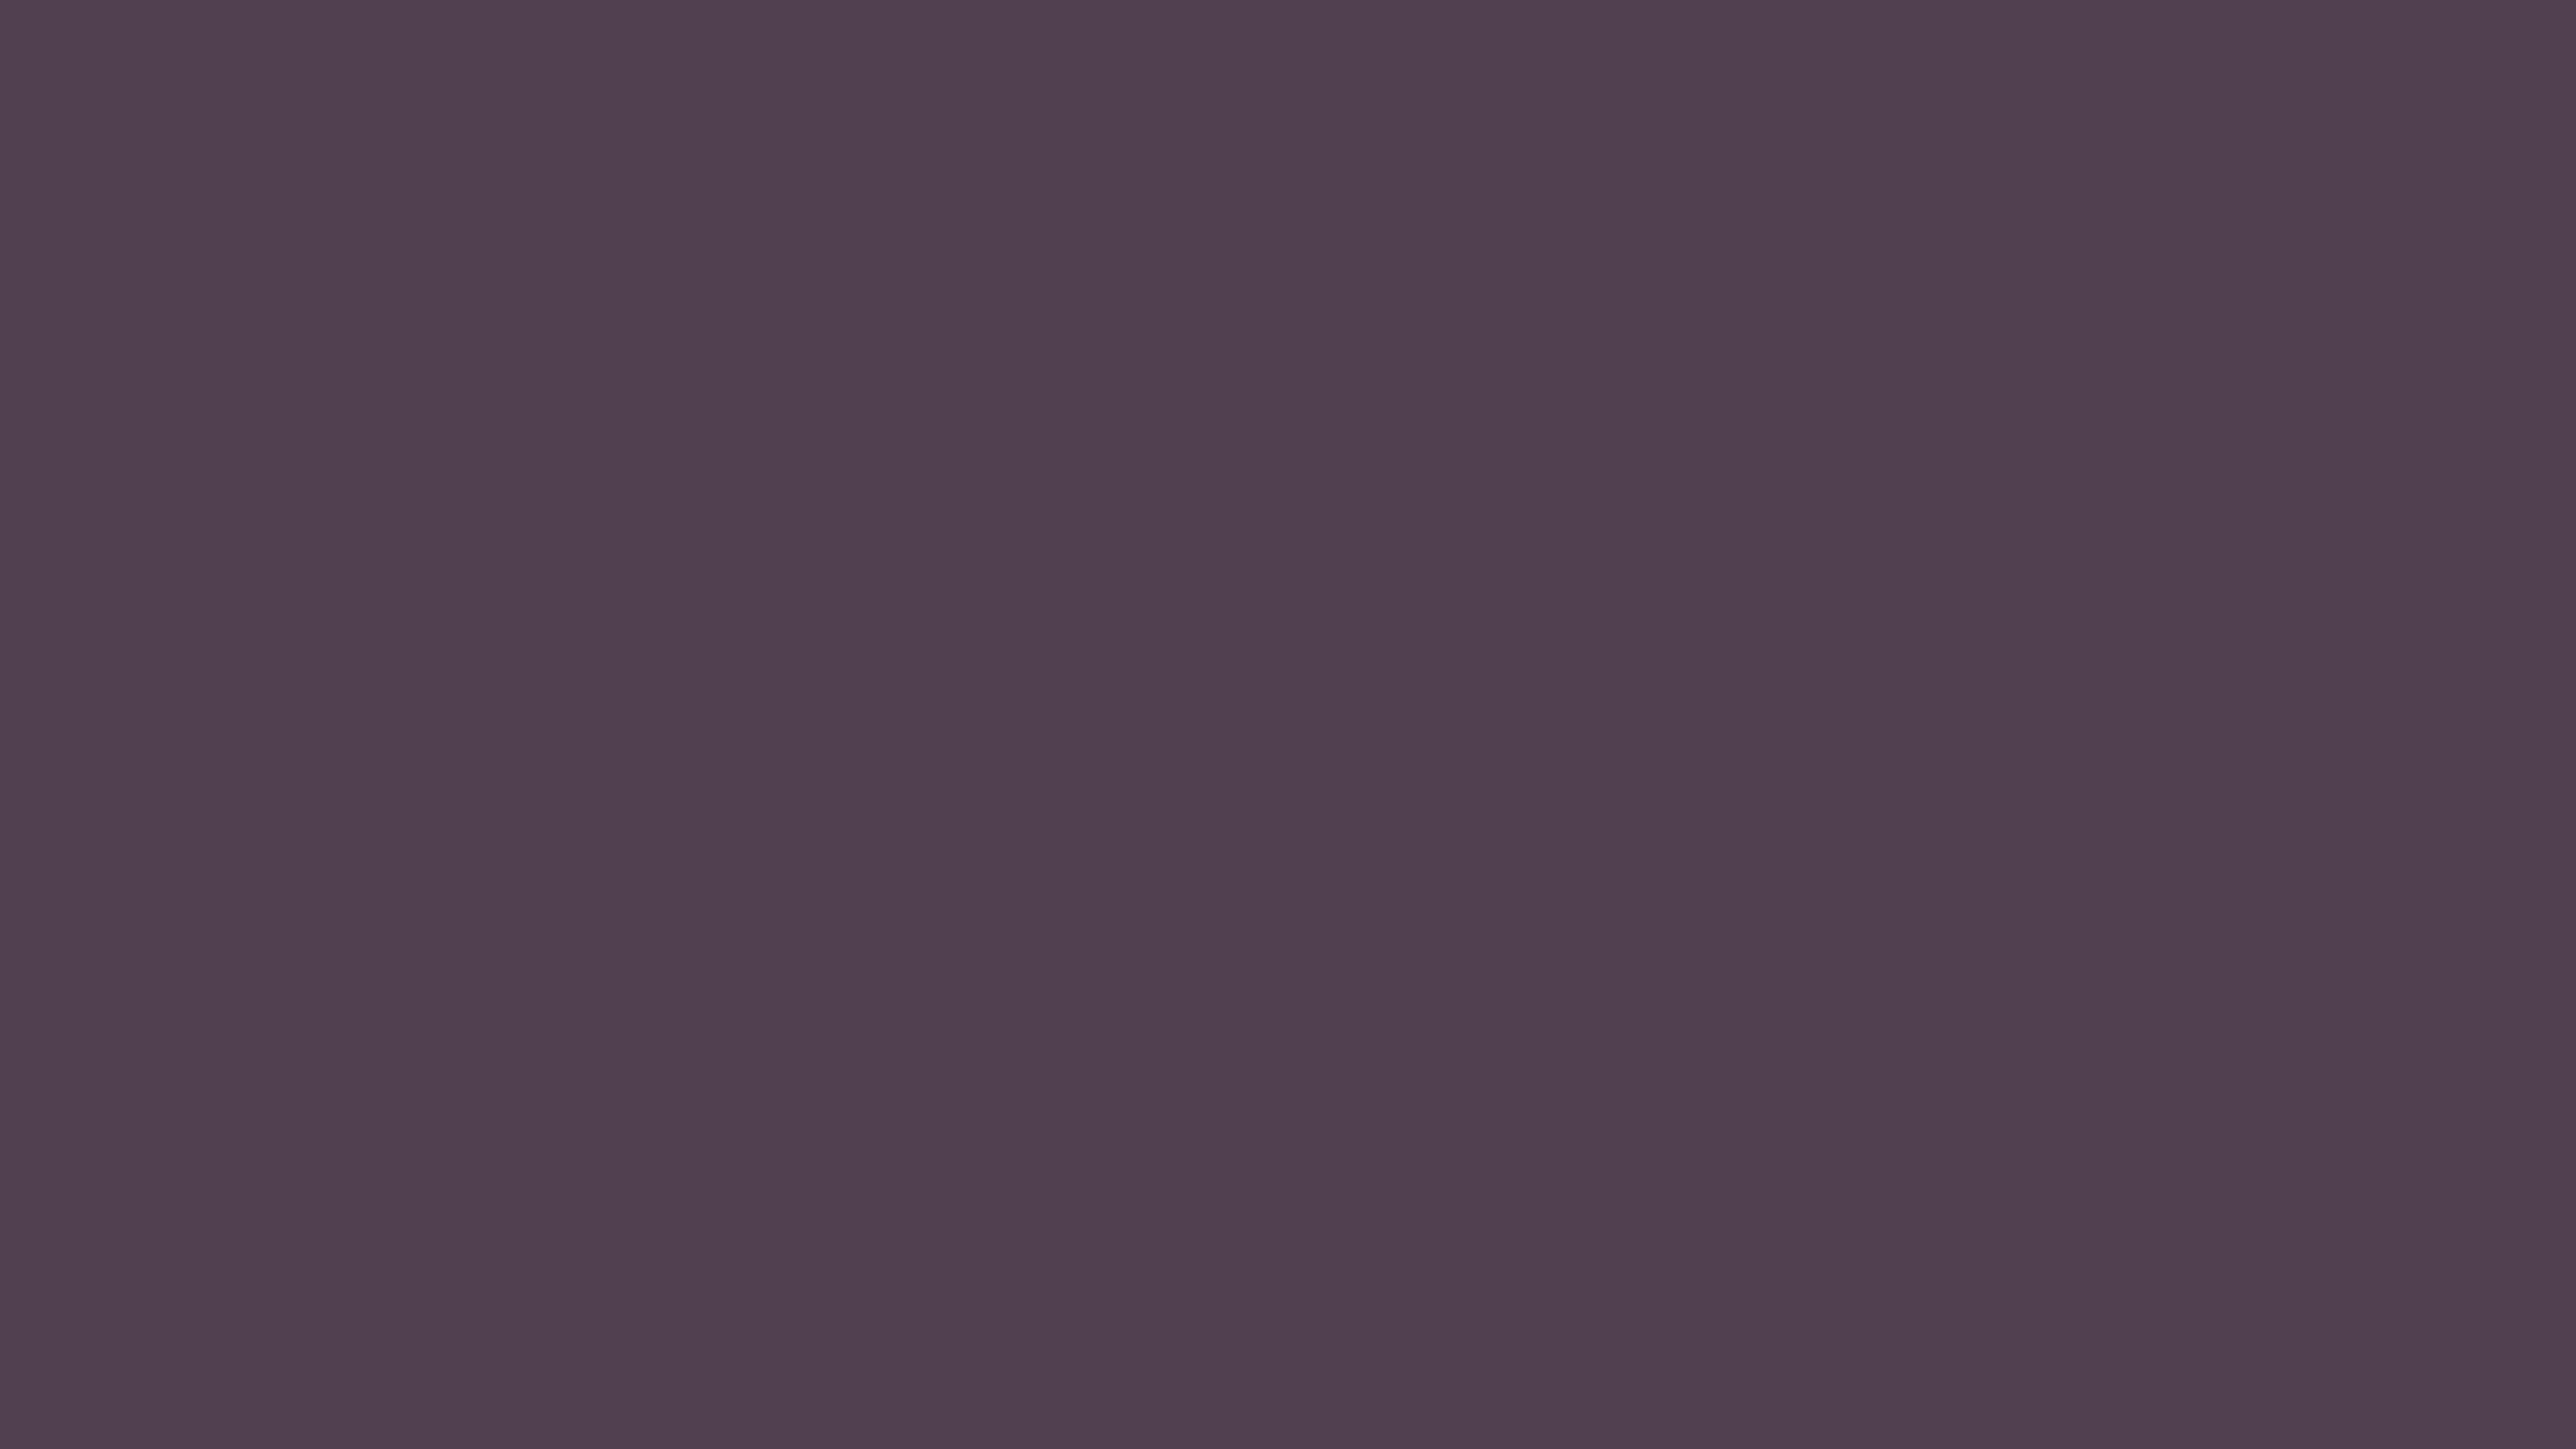 4096x2304 Purple Taupe Solid Color Background